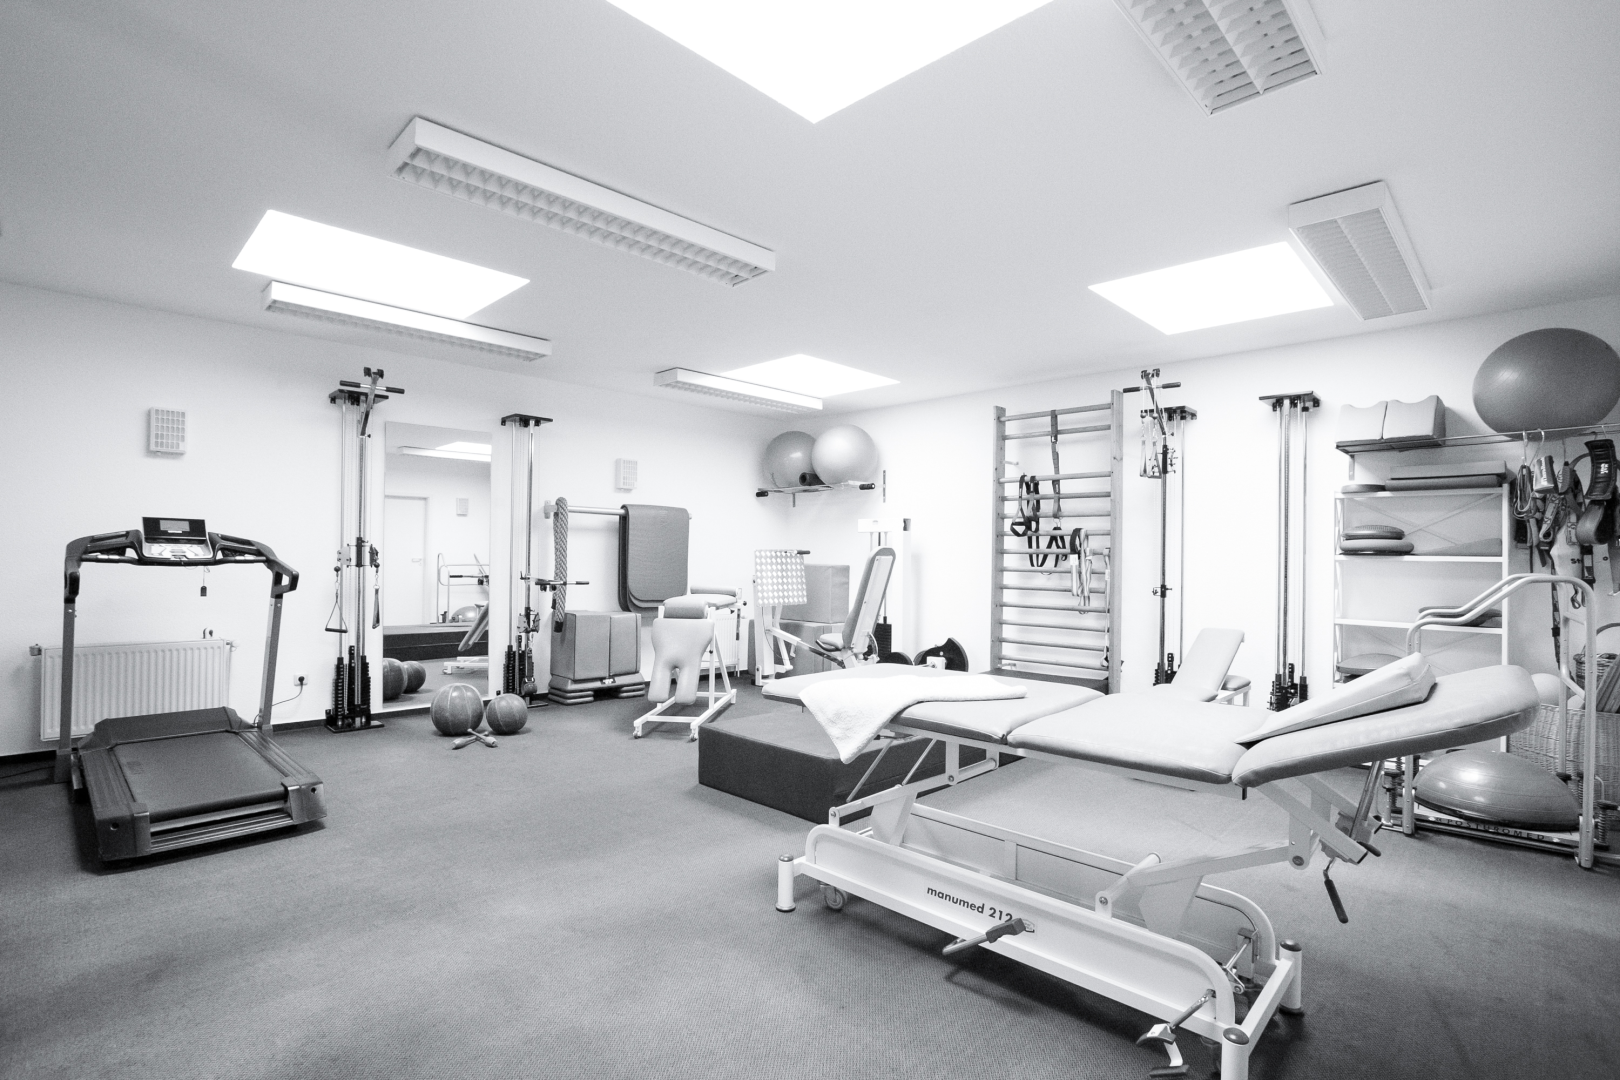 physiotherapiezentrum rostock – martin moratz-12